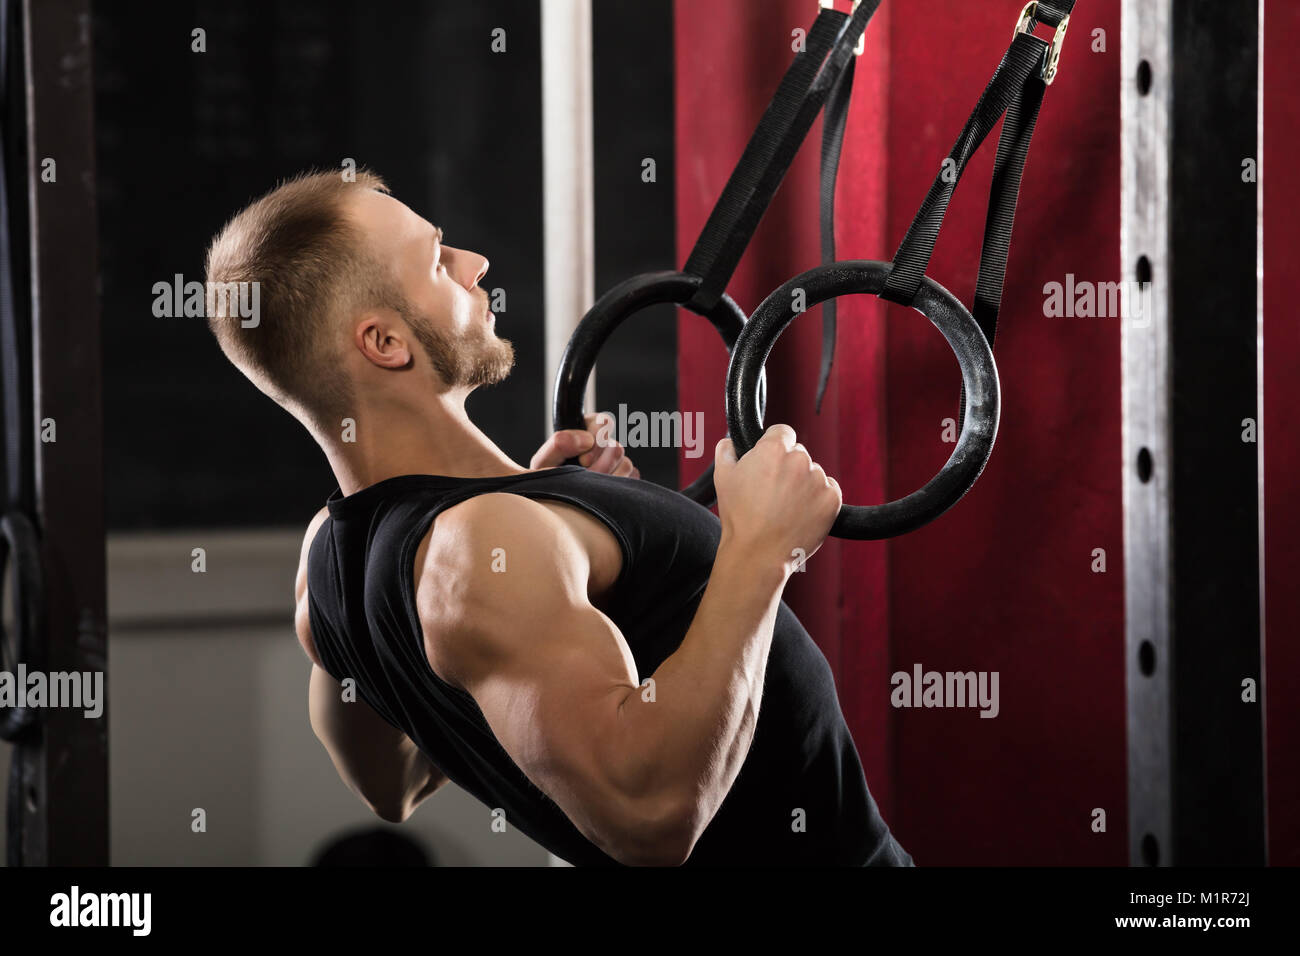 Fitness Man Pulling Up On Gymnastic Rings In The Gym Stock Photo